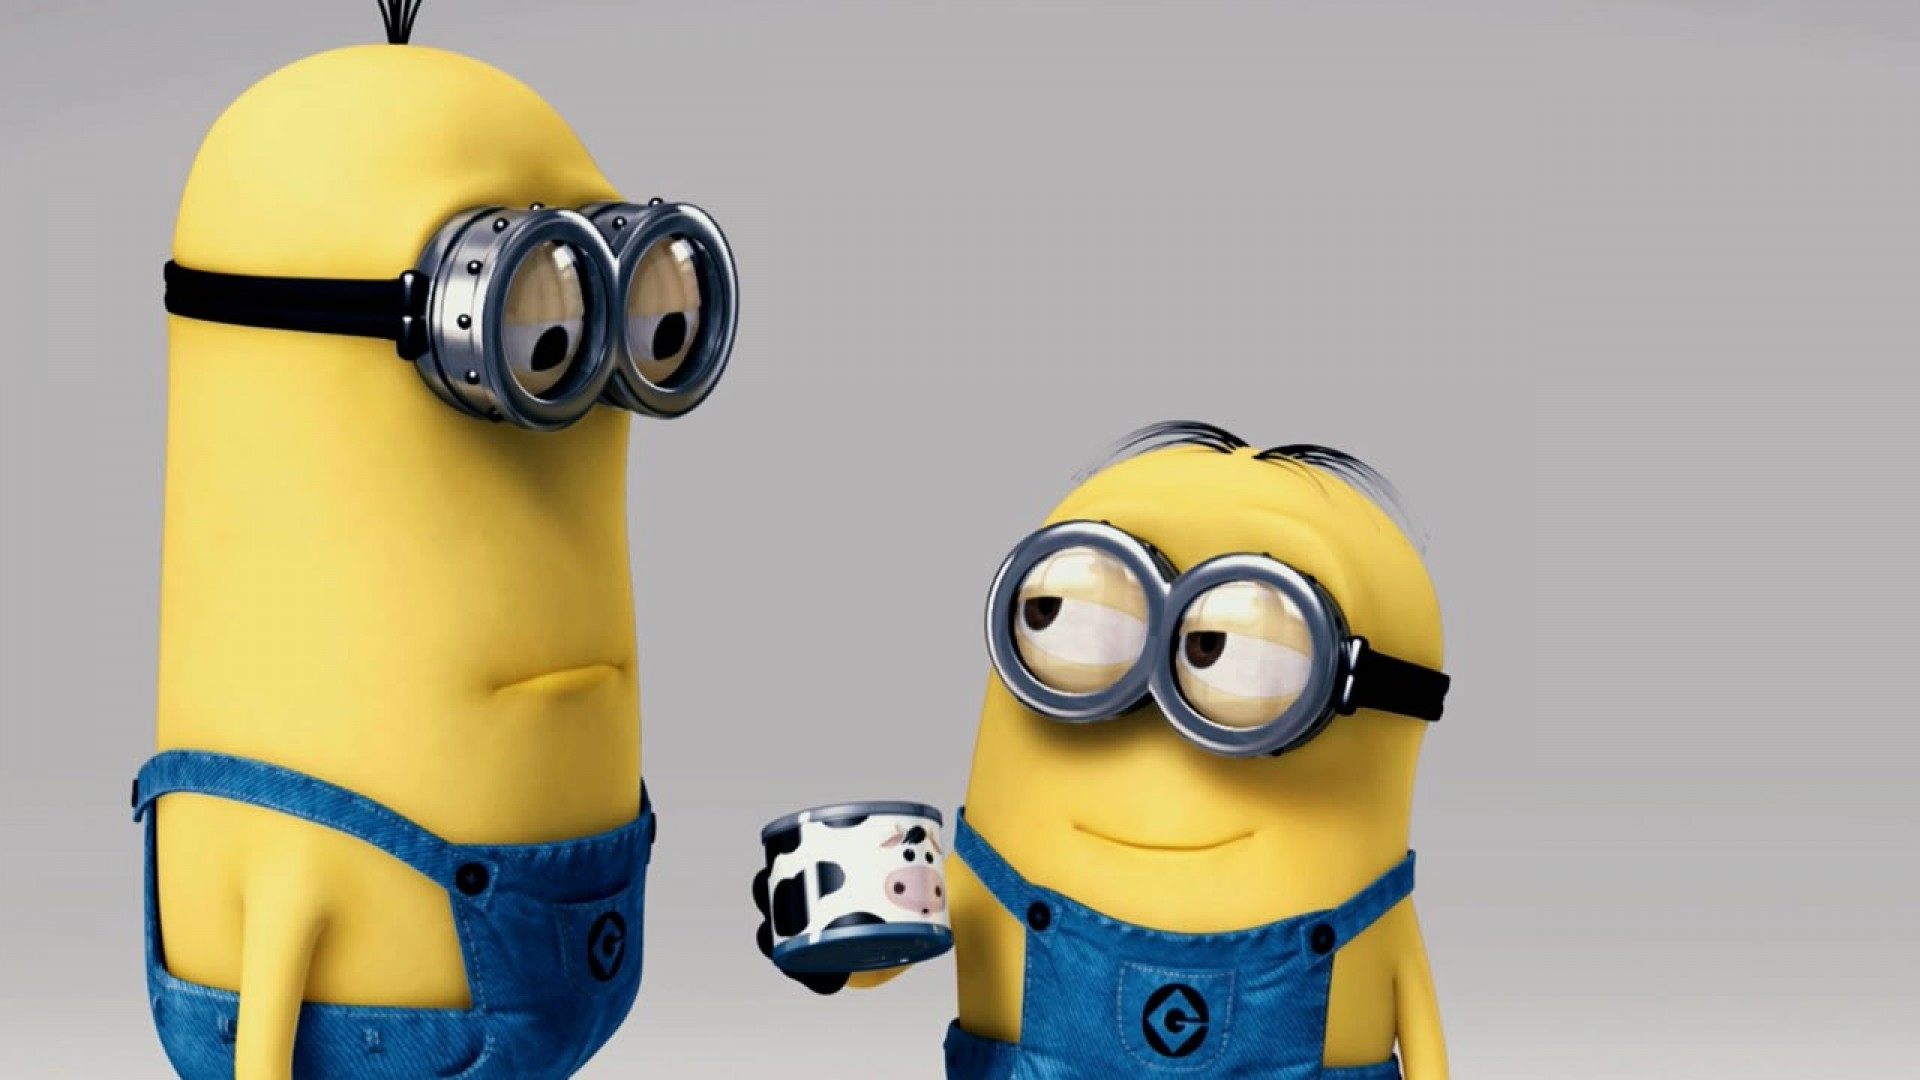 funny wallpaper locker room despicable wallpapers picture back 1920x1080